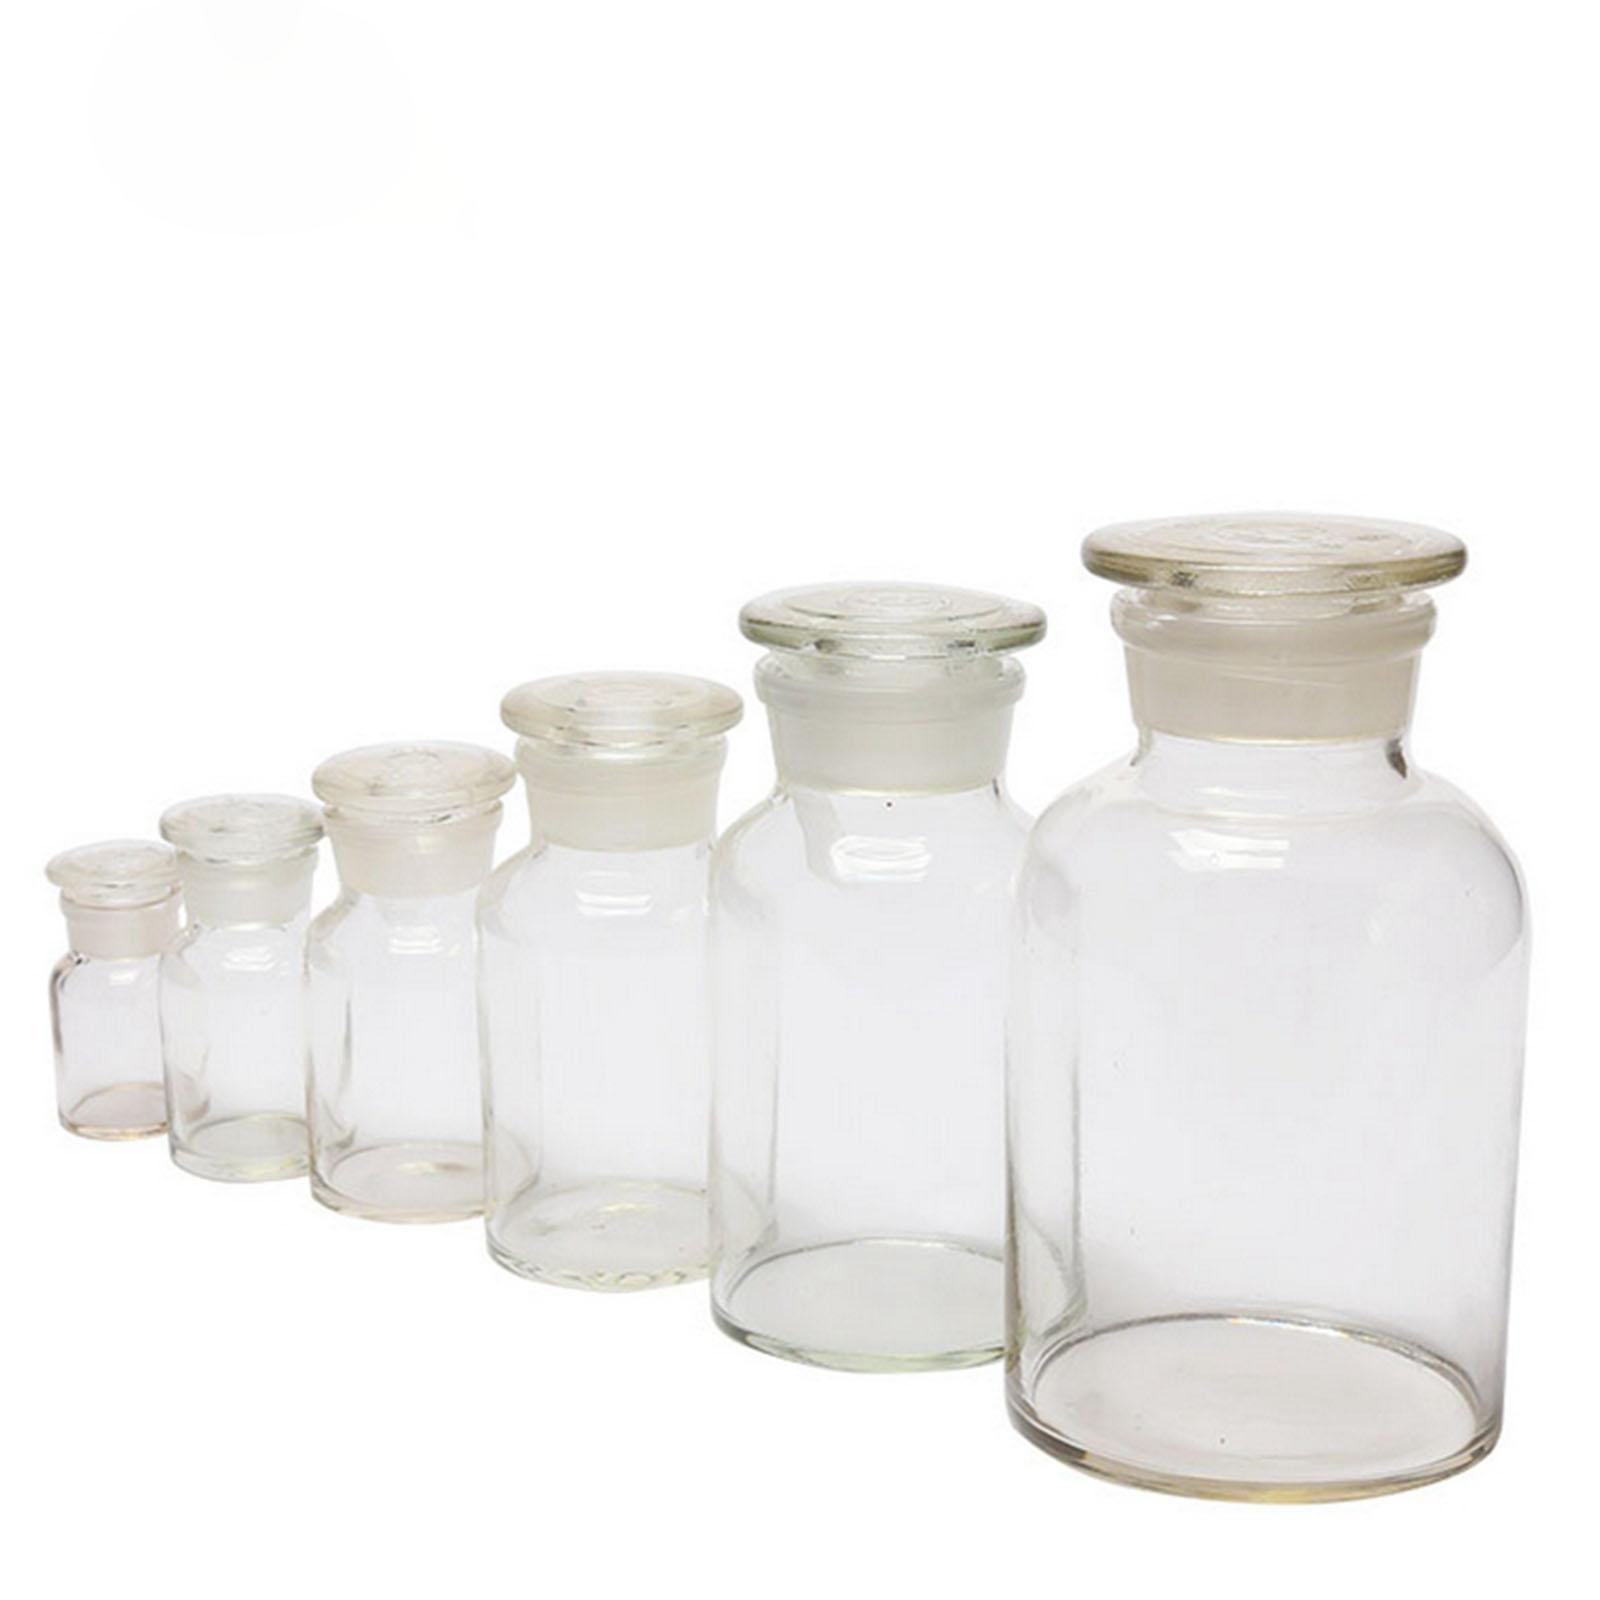 60ml 125ml 250ml 500ml 1000ml 2500ml Clear Glass Jar Wide Mouthed Reagent Bottle Chemical Experiment Ware